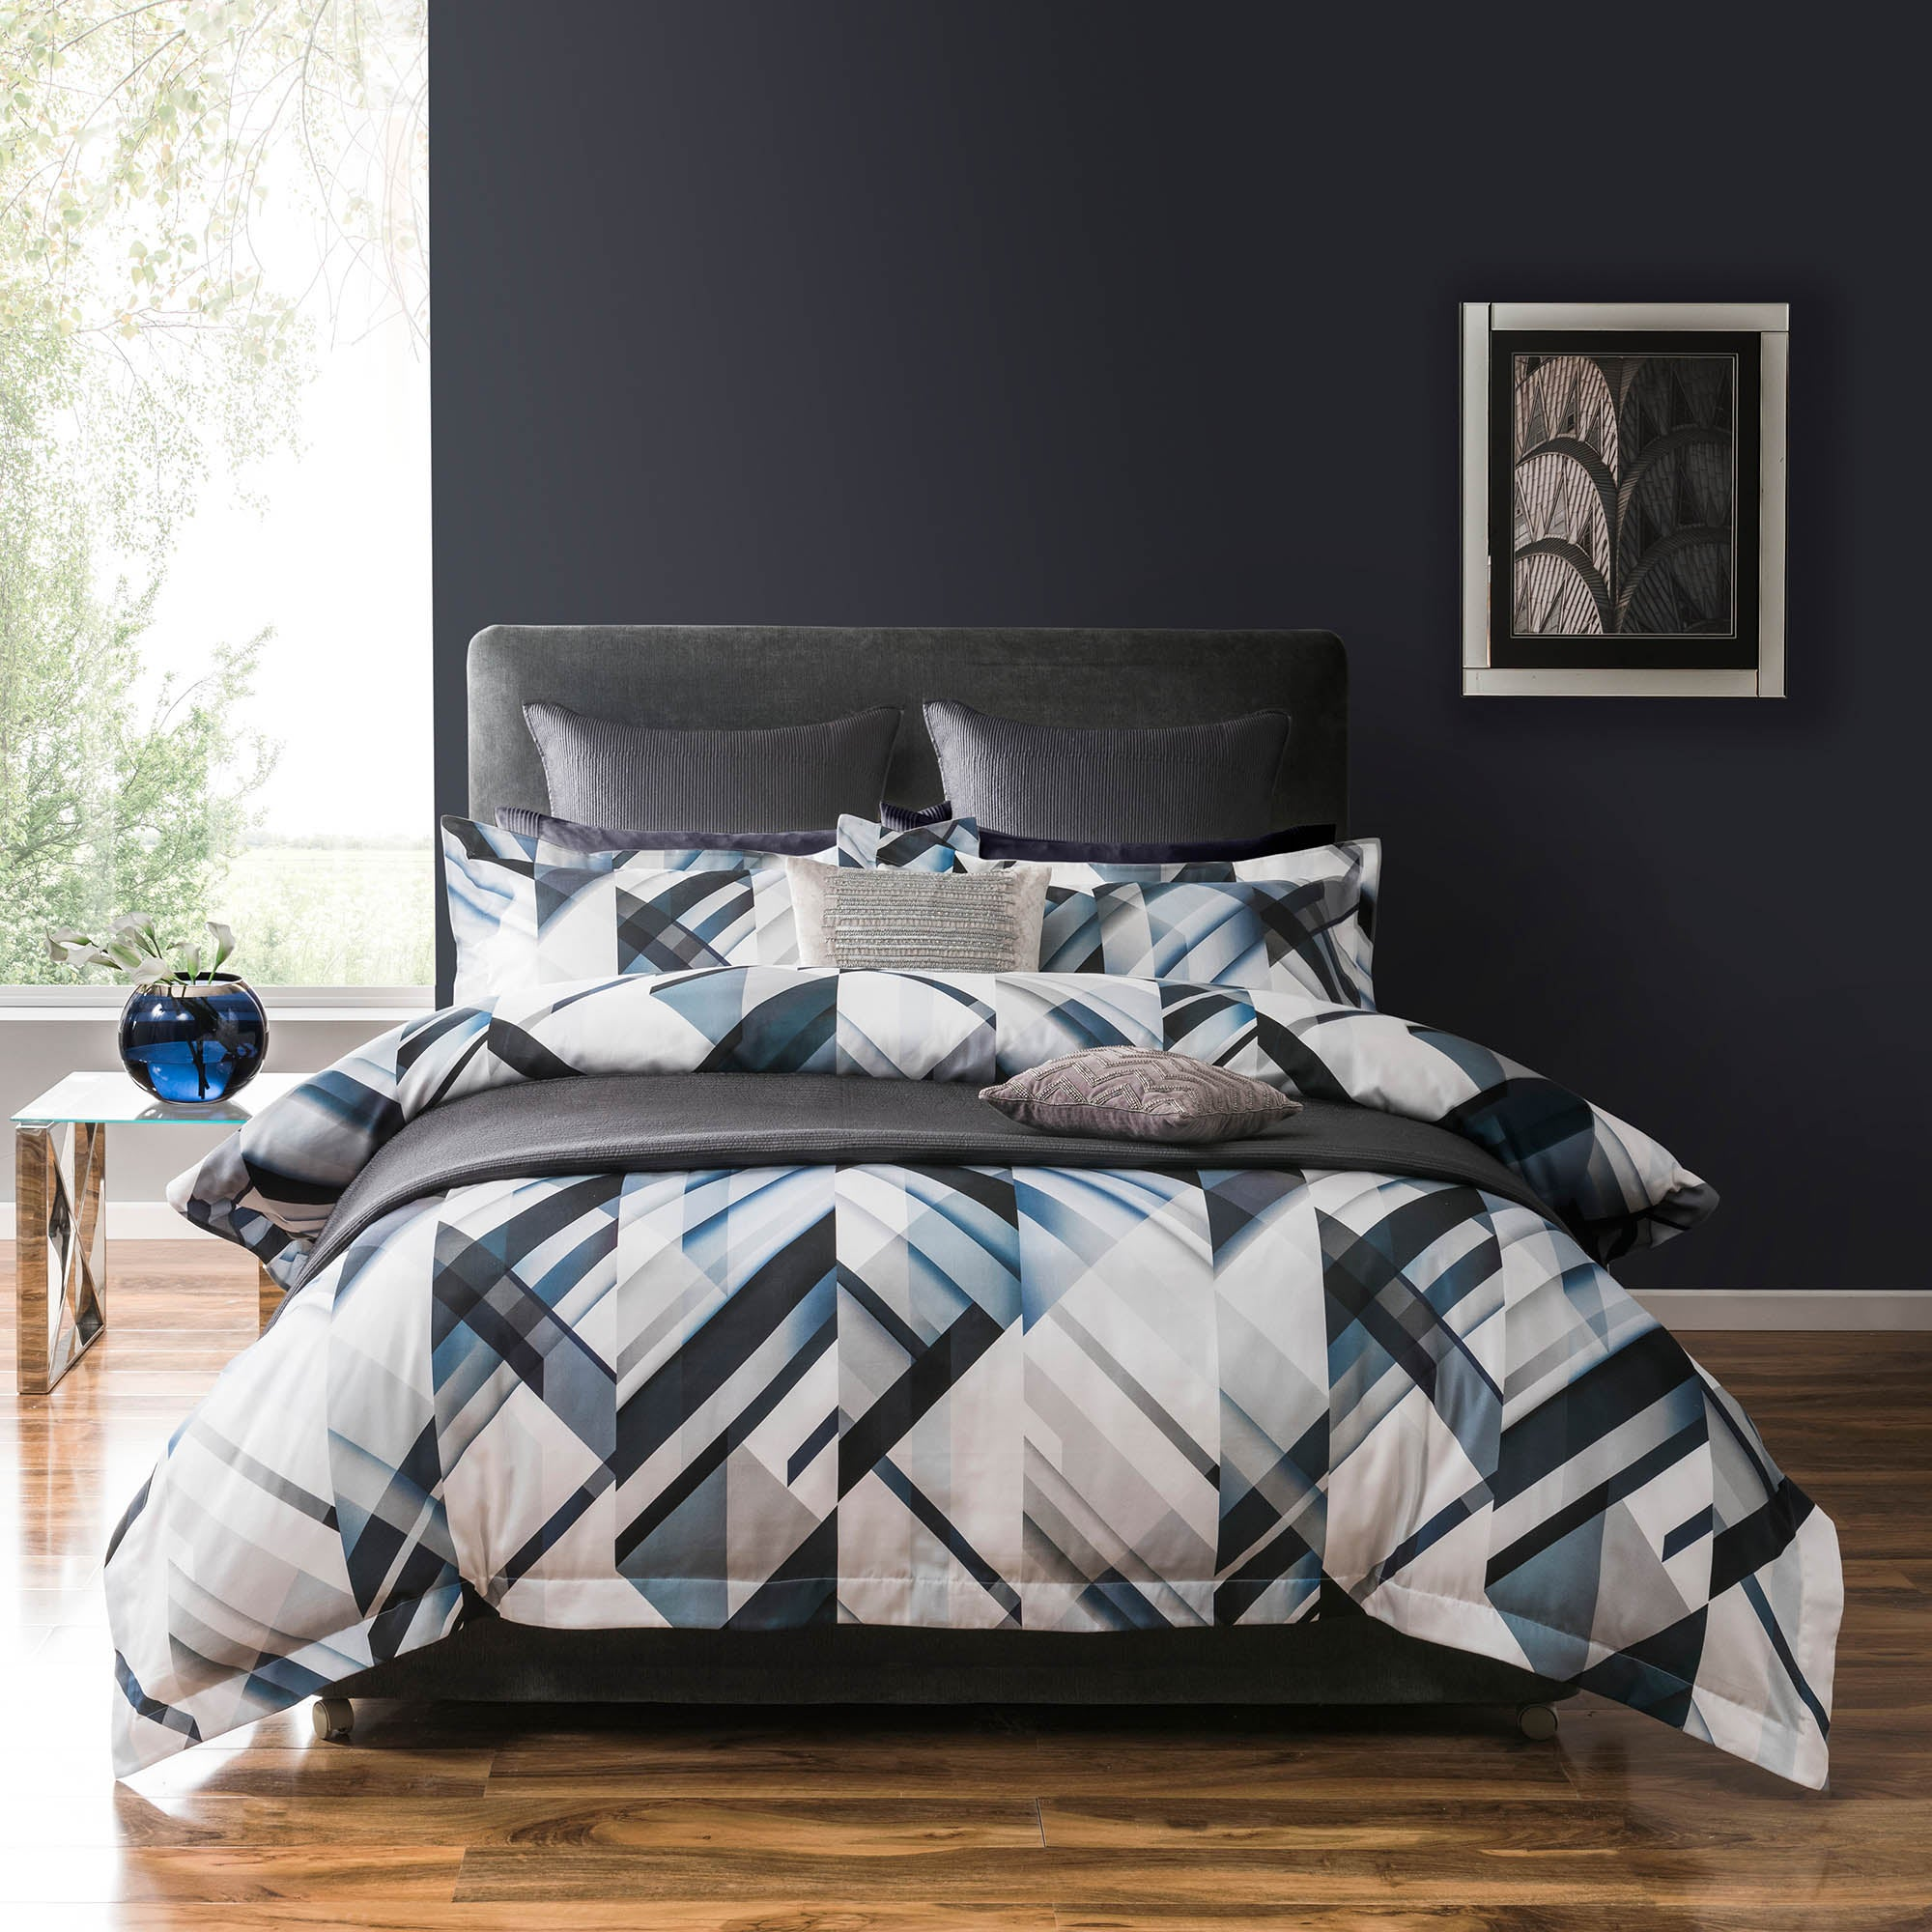 Image of 5A Fifth Avenue Brooklyn Digitally Printed 100% Cotton Blue Duvet Cover Blue